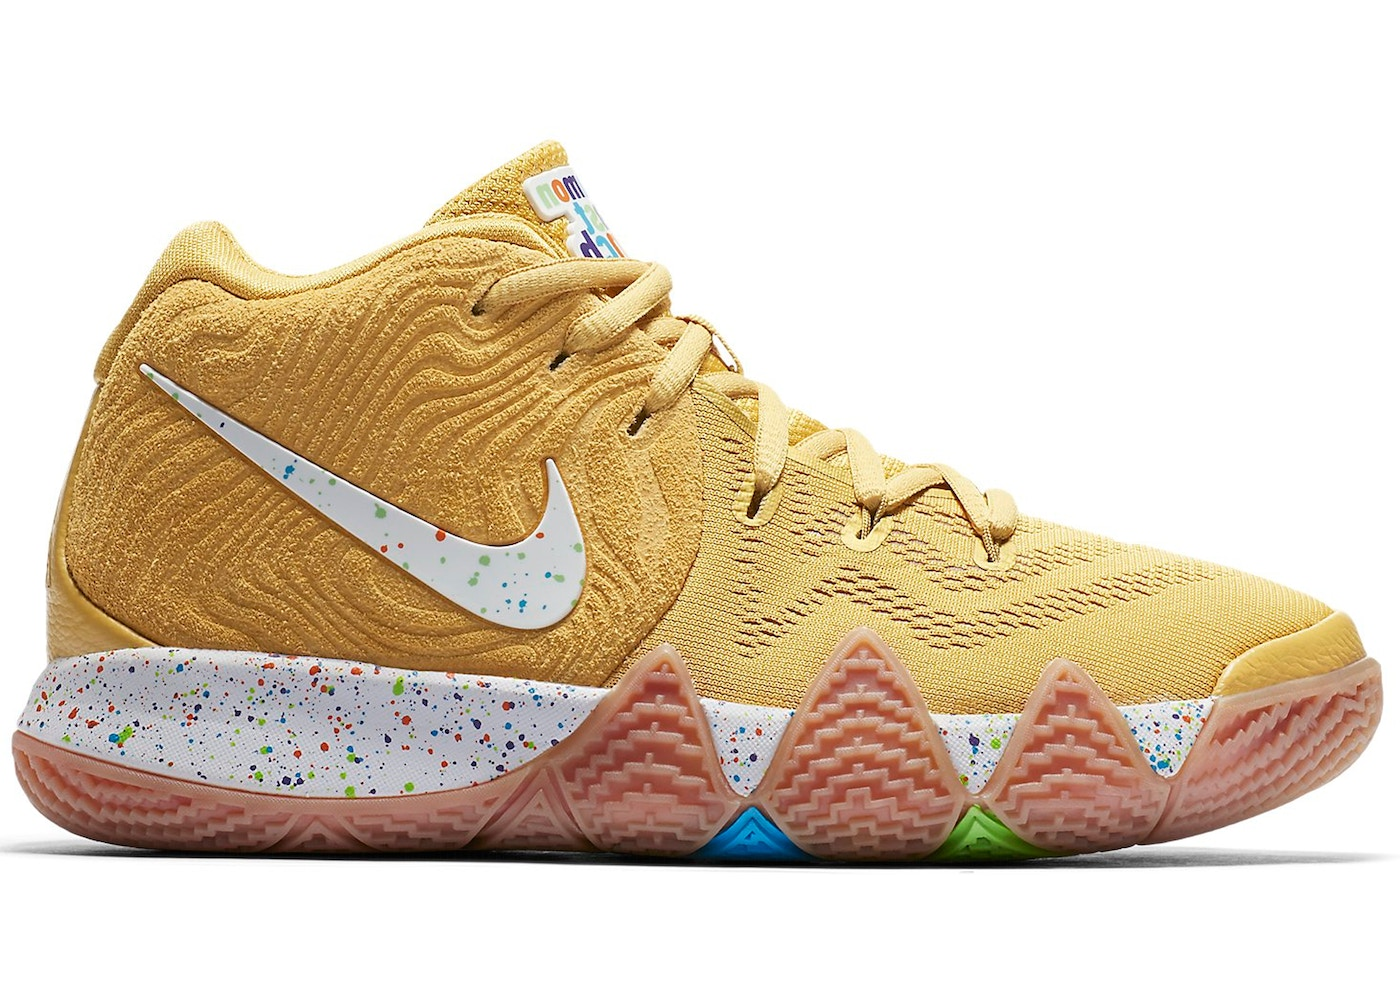 factory price 2c449 a1673 HypeAnalyzer · Kyrie 4 Cinnamon Toast Crunch (GS)